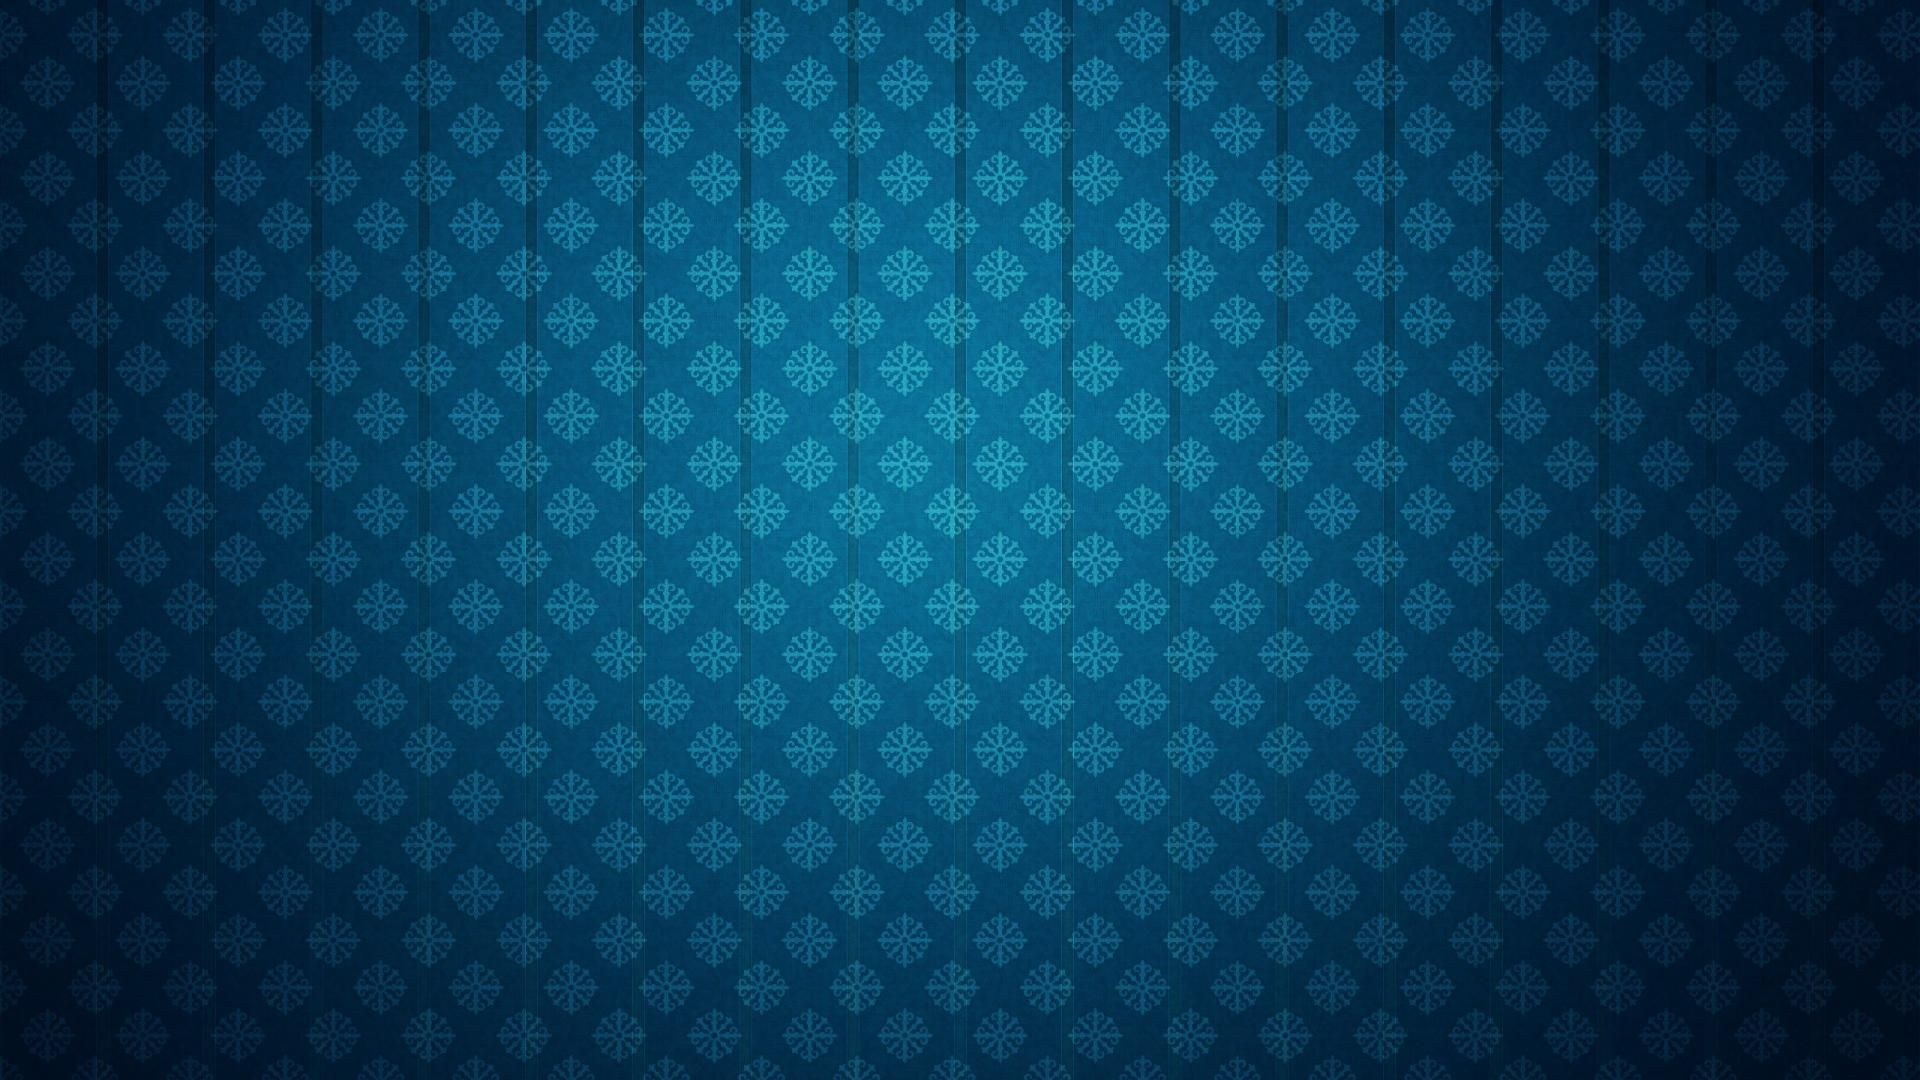 Blue Background Hd Designs 1920x1080 Abstract Beautiful Design Backgrounds Wide Wallpapers1280x8001440x900